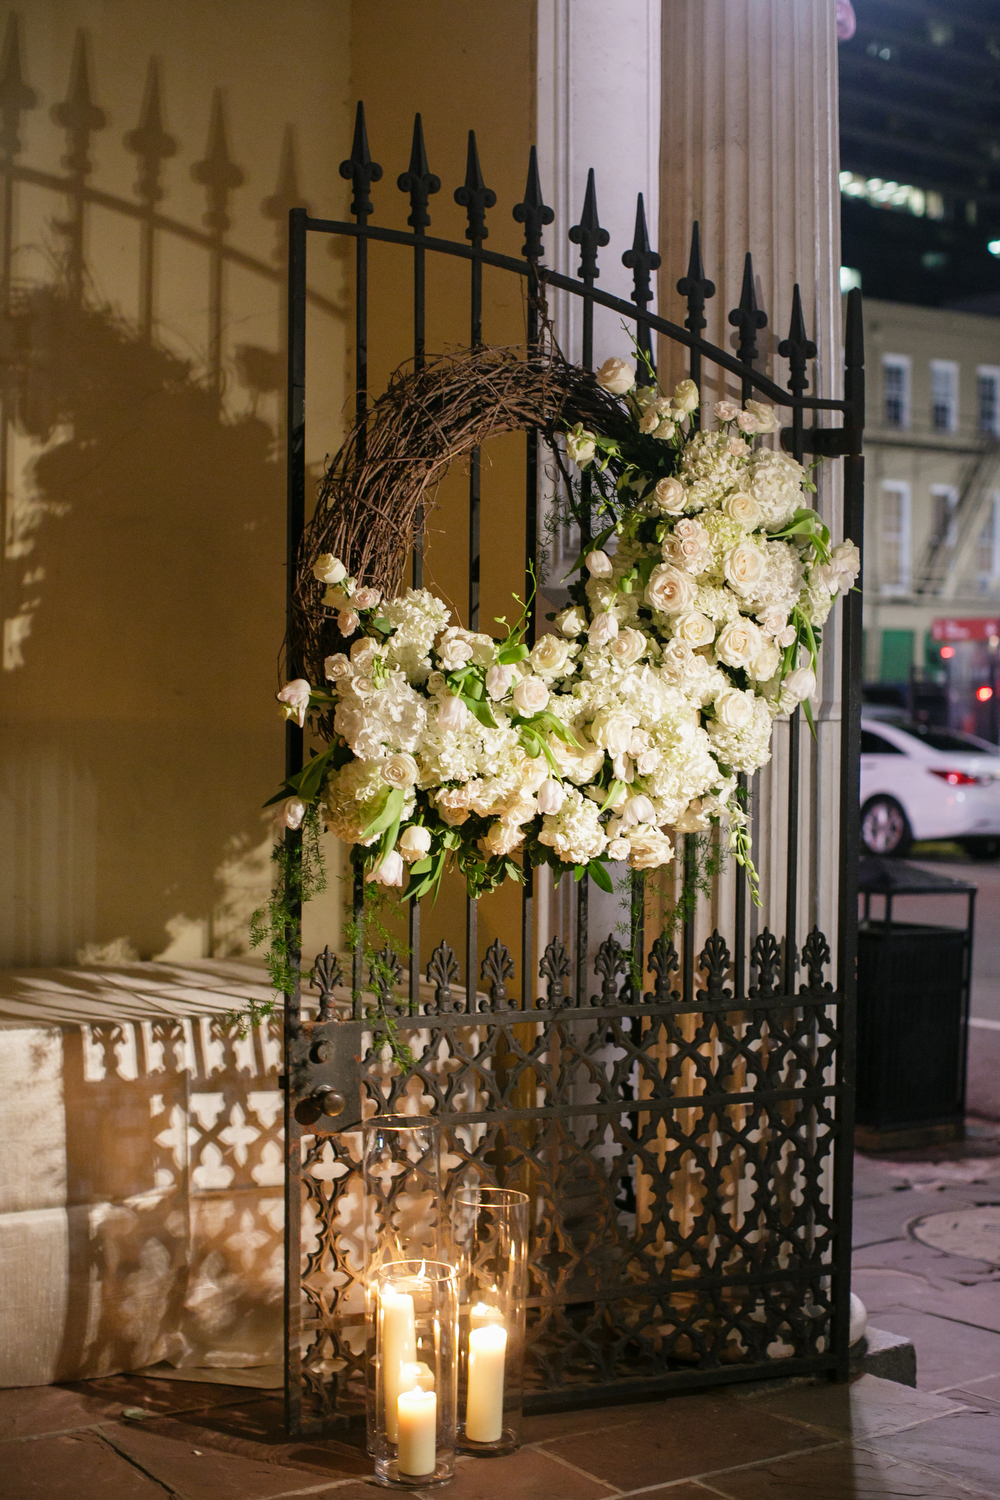 Gate decorations at the New Orleans Board of Trade courtyard entrance | Wrought iron gate floral decor | How to transform an open ballroom with stunning decor | Sapphire Events | Greer G Photography | Board of Trade | White and Gold Wedding | Winter Wedding Inspiration | White and Green Wedding | Ballroom wedding